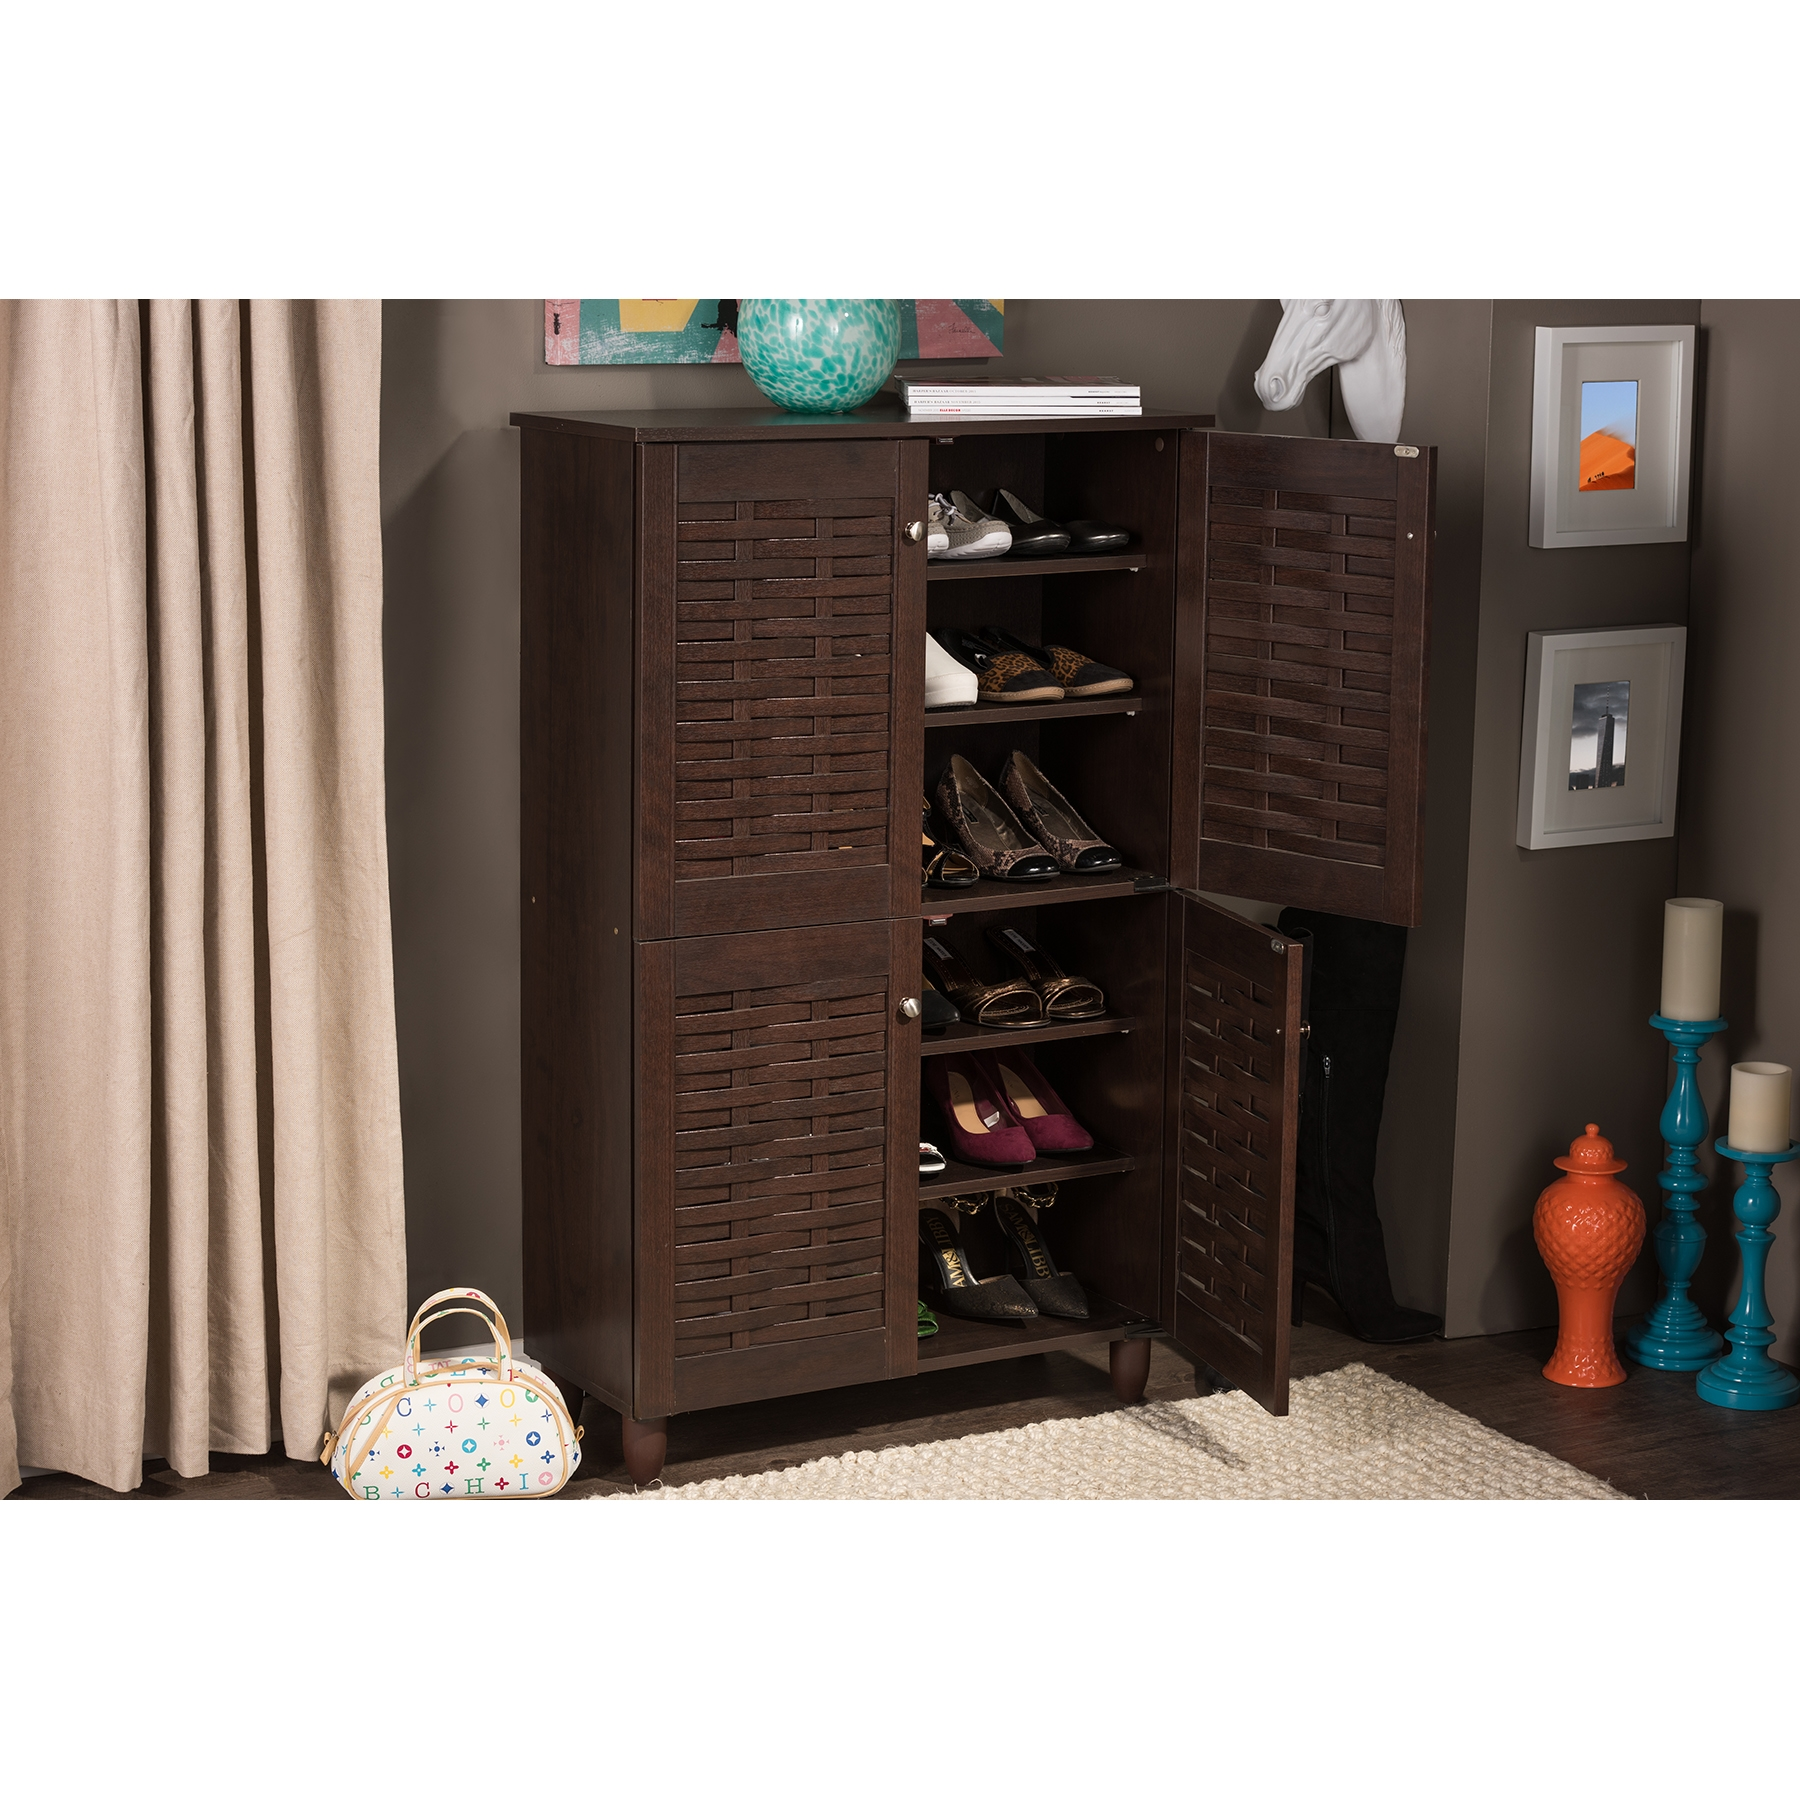 shoe storage furniture for entryway. baxton studio winda modern and contemporary 4door dark brown wooden entryway shoes storage cabinet shoe furniture for